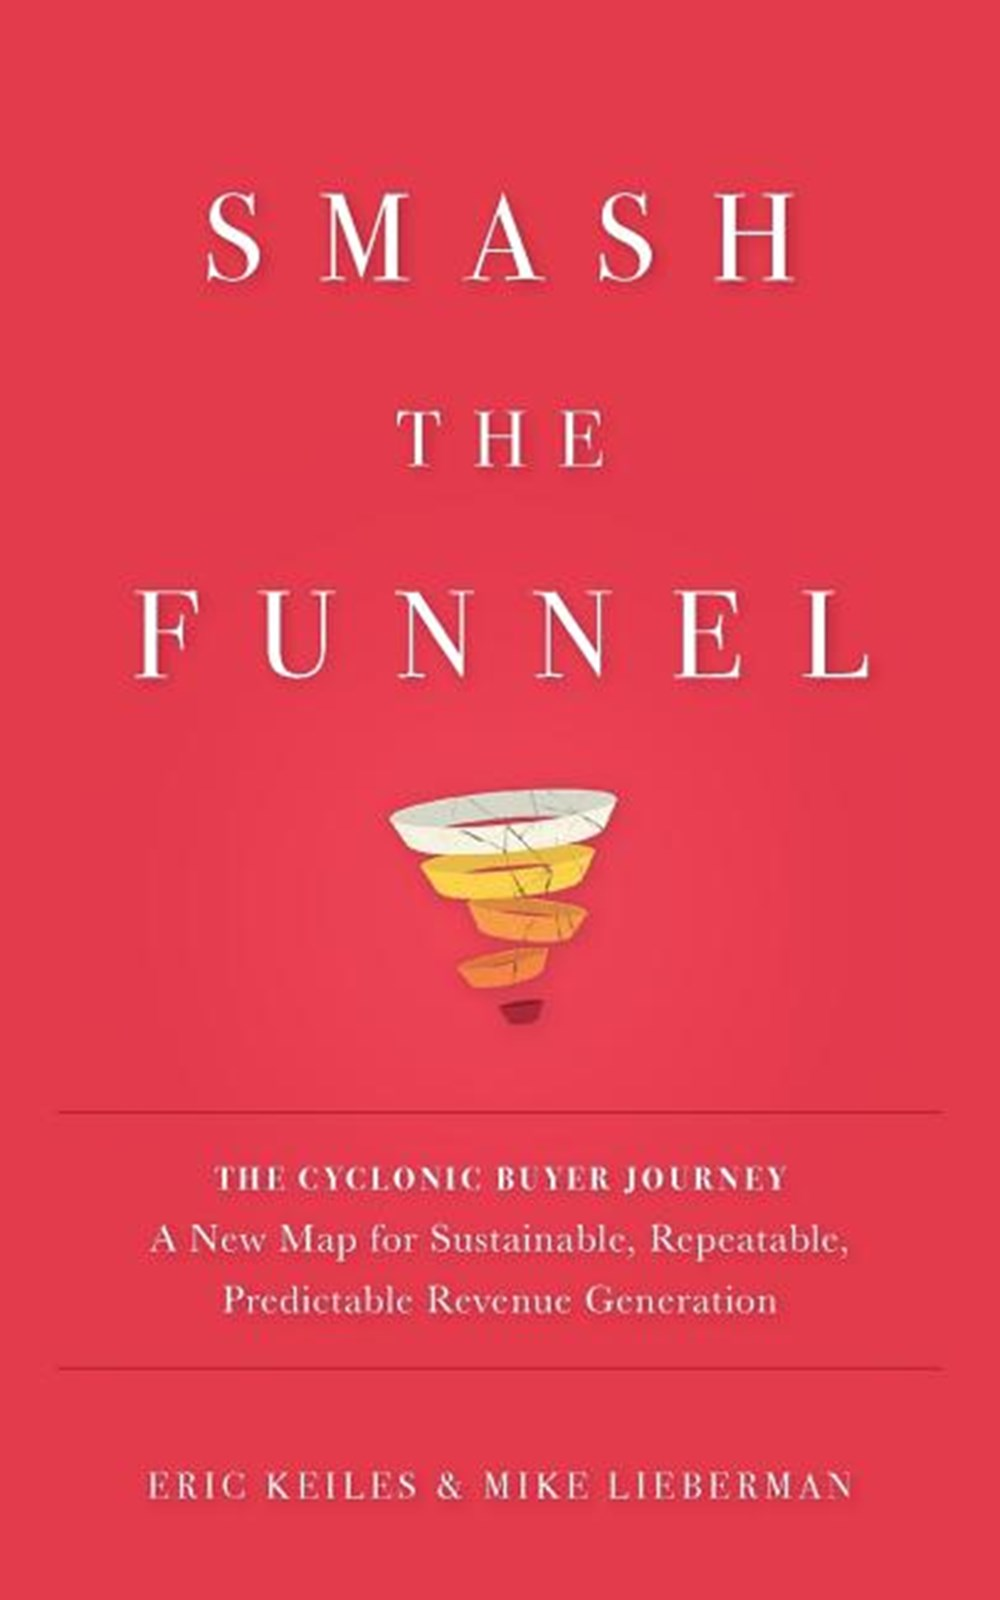 Smash the Funnel The Cyclonic Buyer Journey--A New Map for Sustainable, Repeatable, Predictable Reve